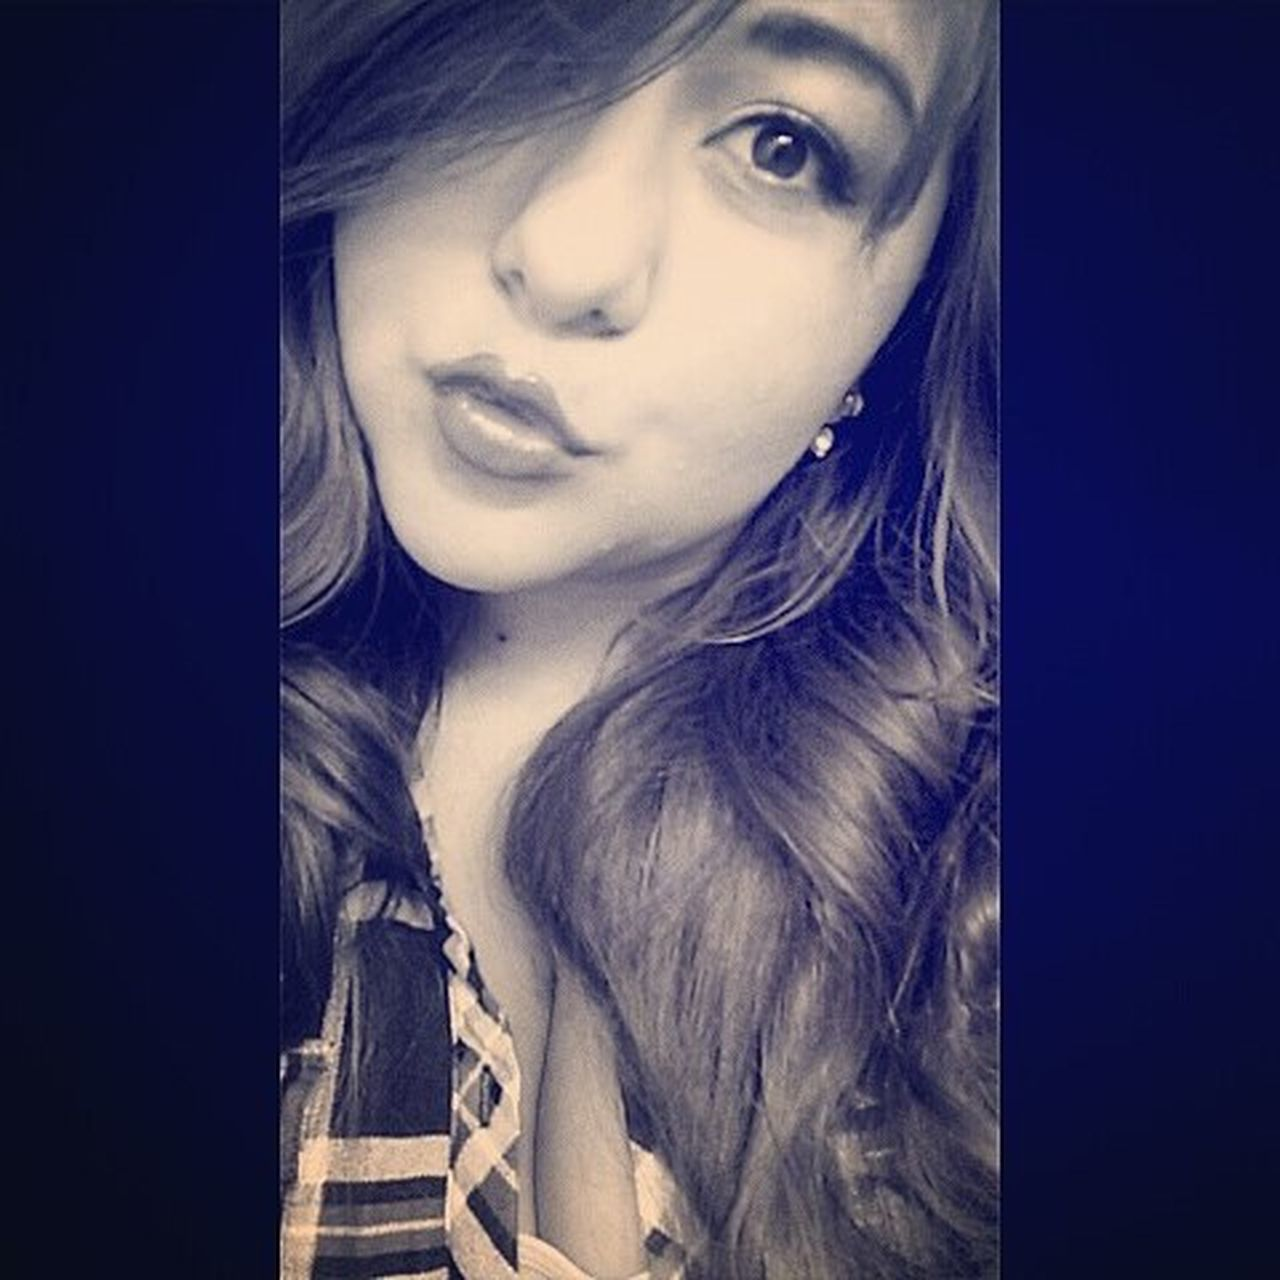 Selfiesunday Kisses Awkaawkward 😂😘💋💙💙💙Blue Fromtheotherday Ohwell Plaid